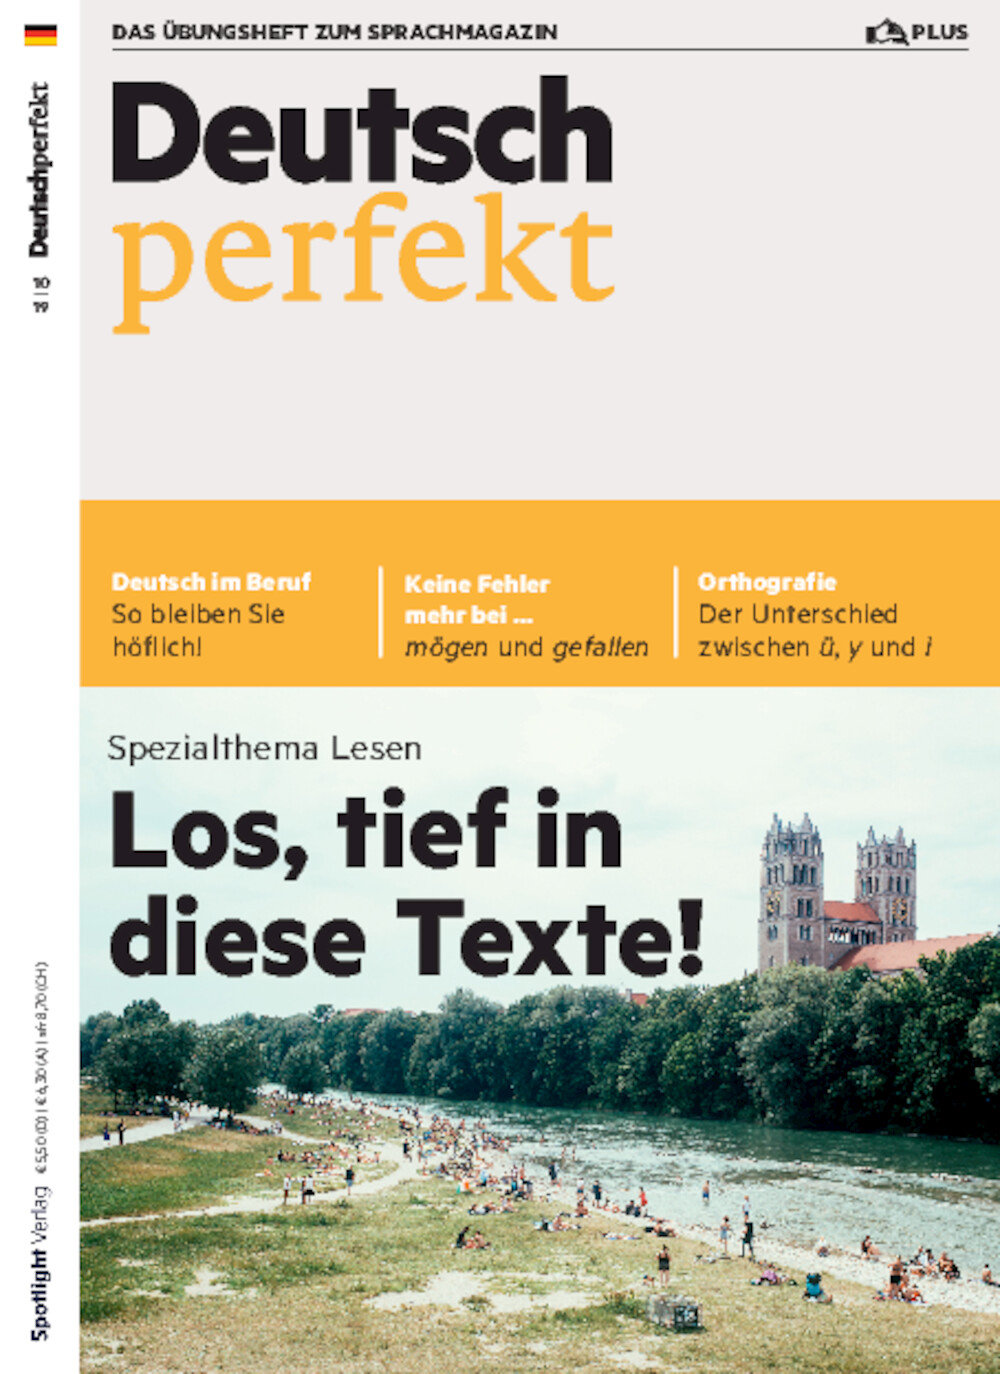 Deutsch perfekt PLUS ePaper 10/2019